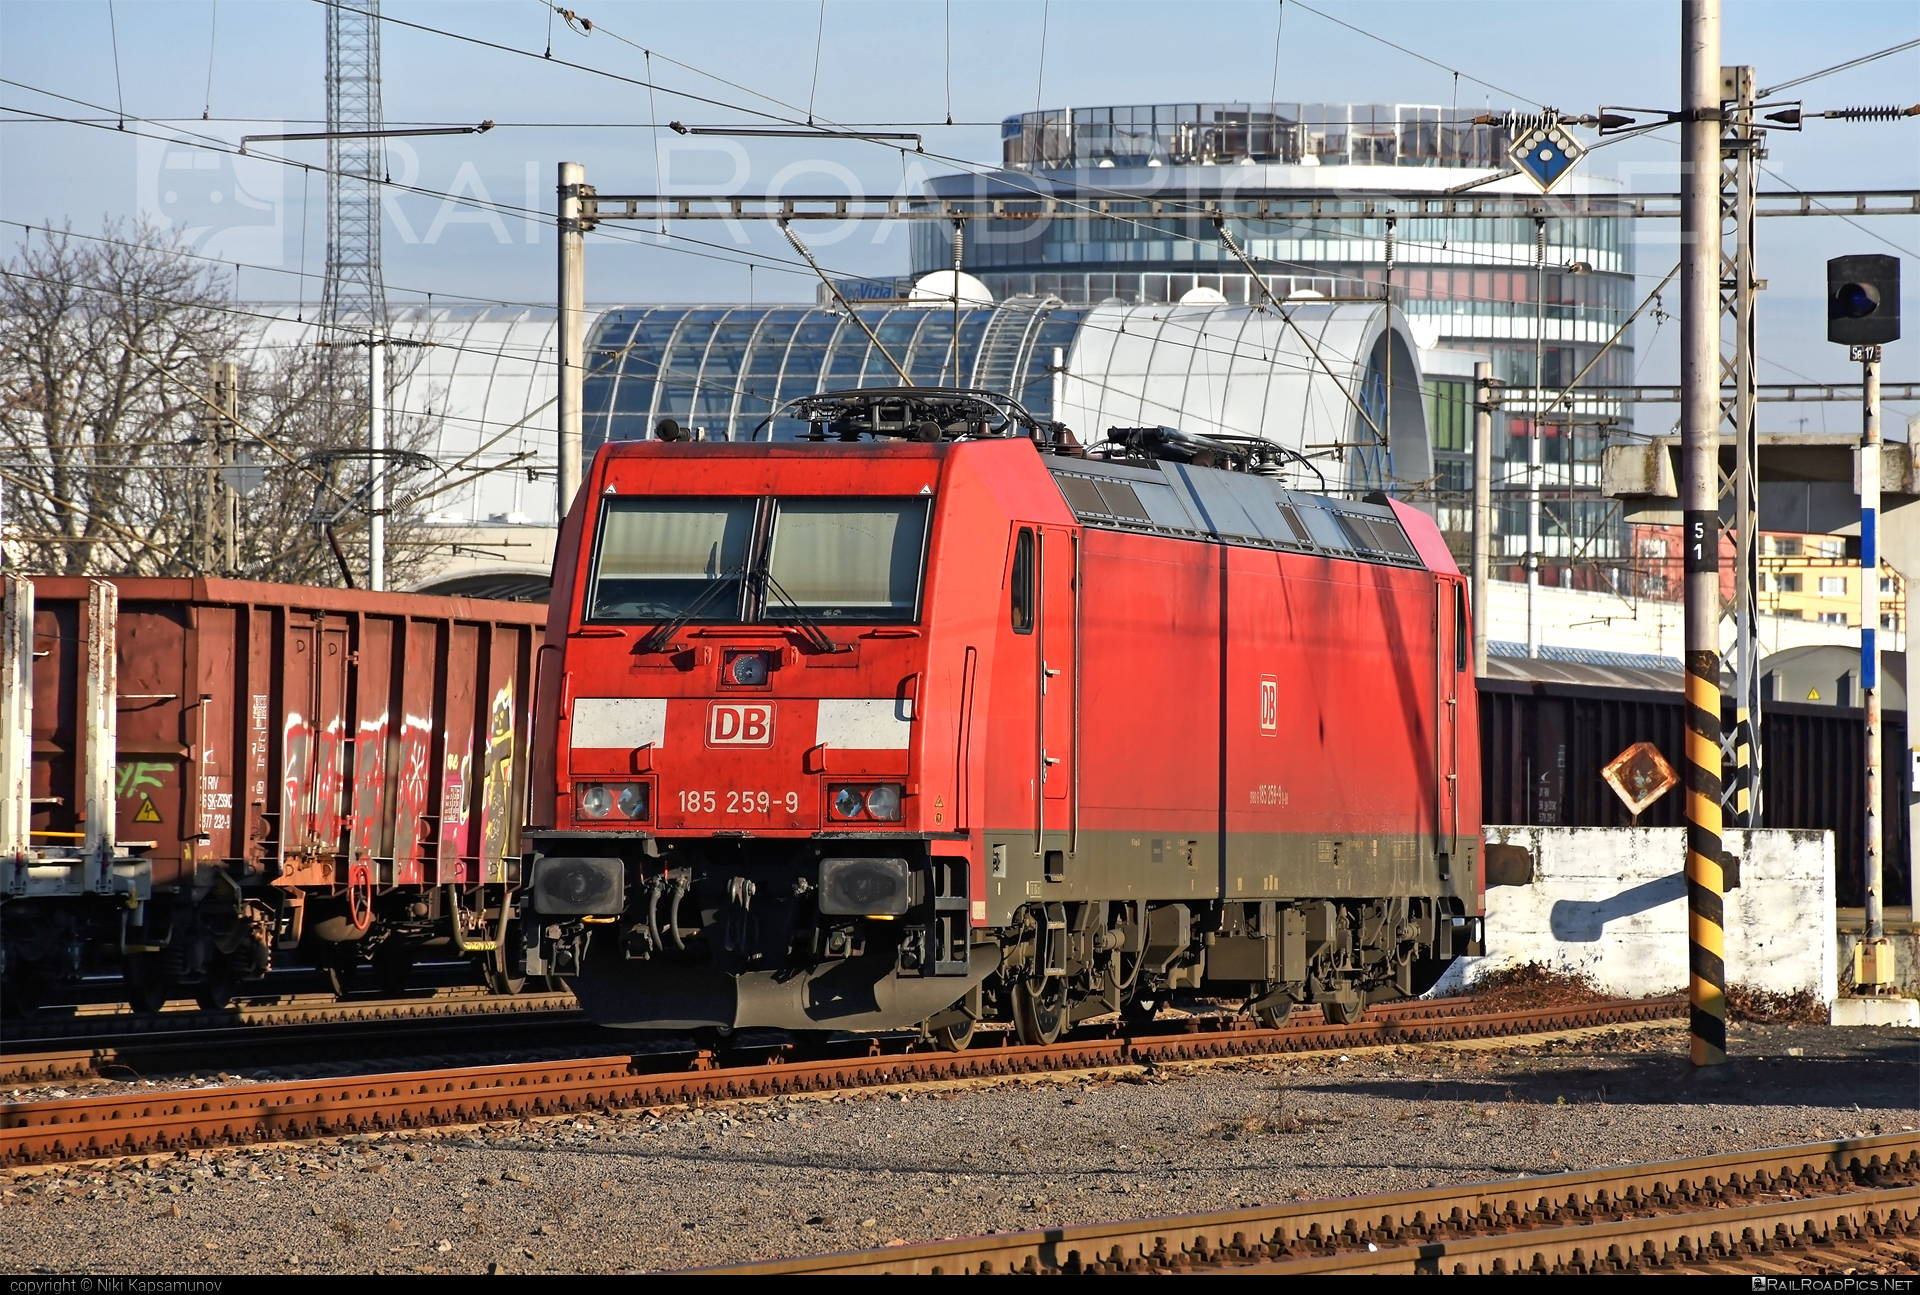 Bombardier TRAXX F140 AC2 - 185 259-9 operated by DB Cargo AG #bombardier #bombardiertraxx #db #dbcargo #dbcargoag #deutschebahn #traxx #traxxf140 #traxxf140ac #traxxf140ac2